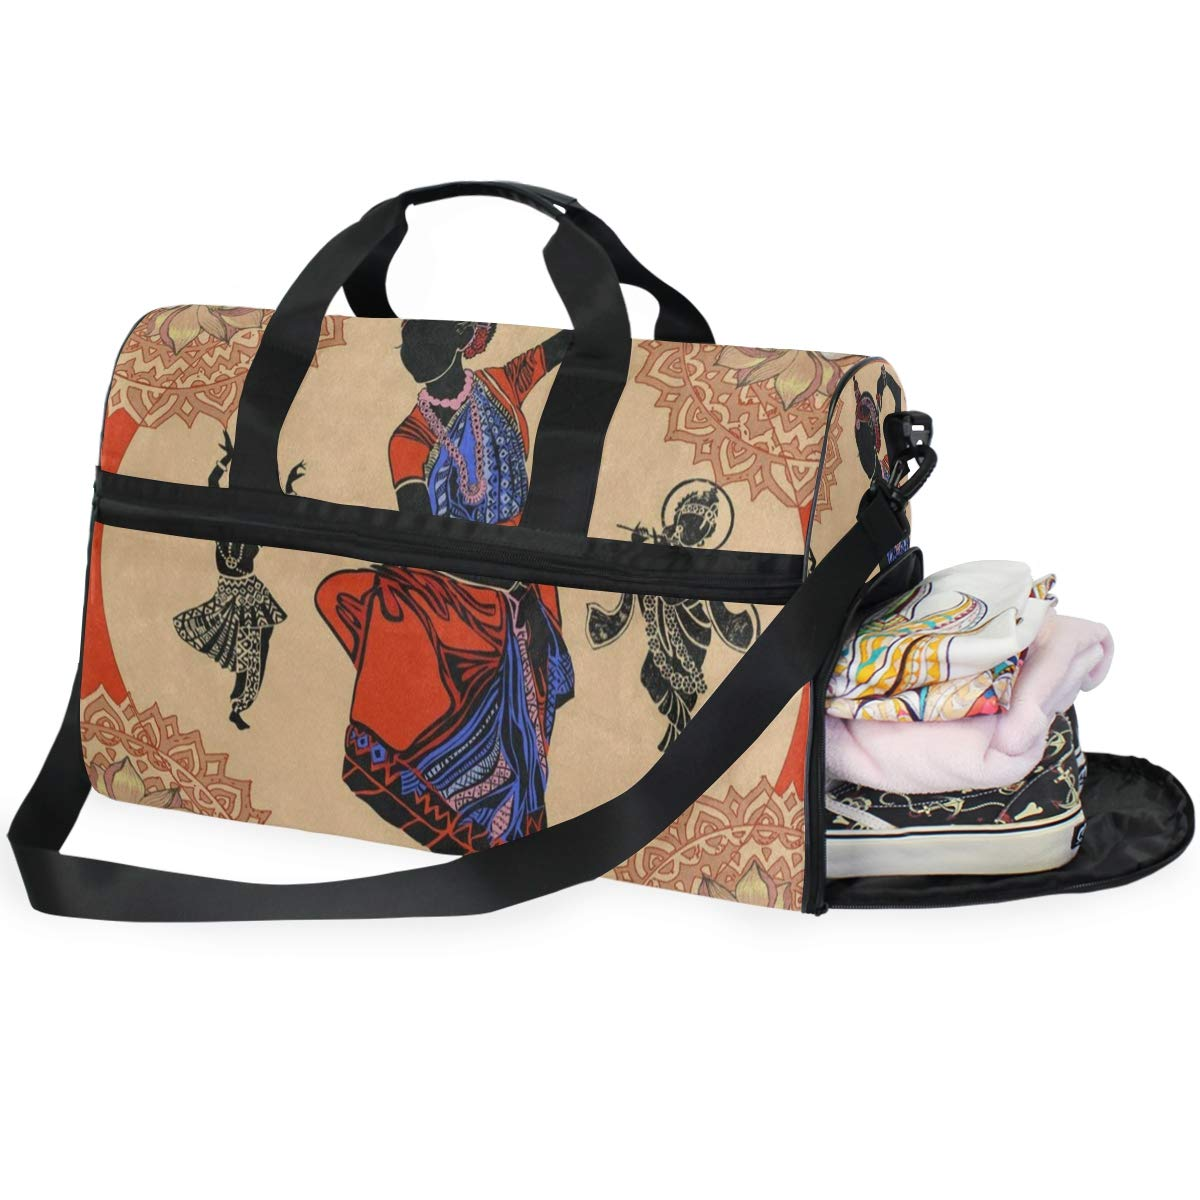 Travel Tote Luggage Weekender Duffle Bag Indian Woman Mandala Large Canvas shoulder bag with Shoe Compartment